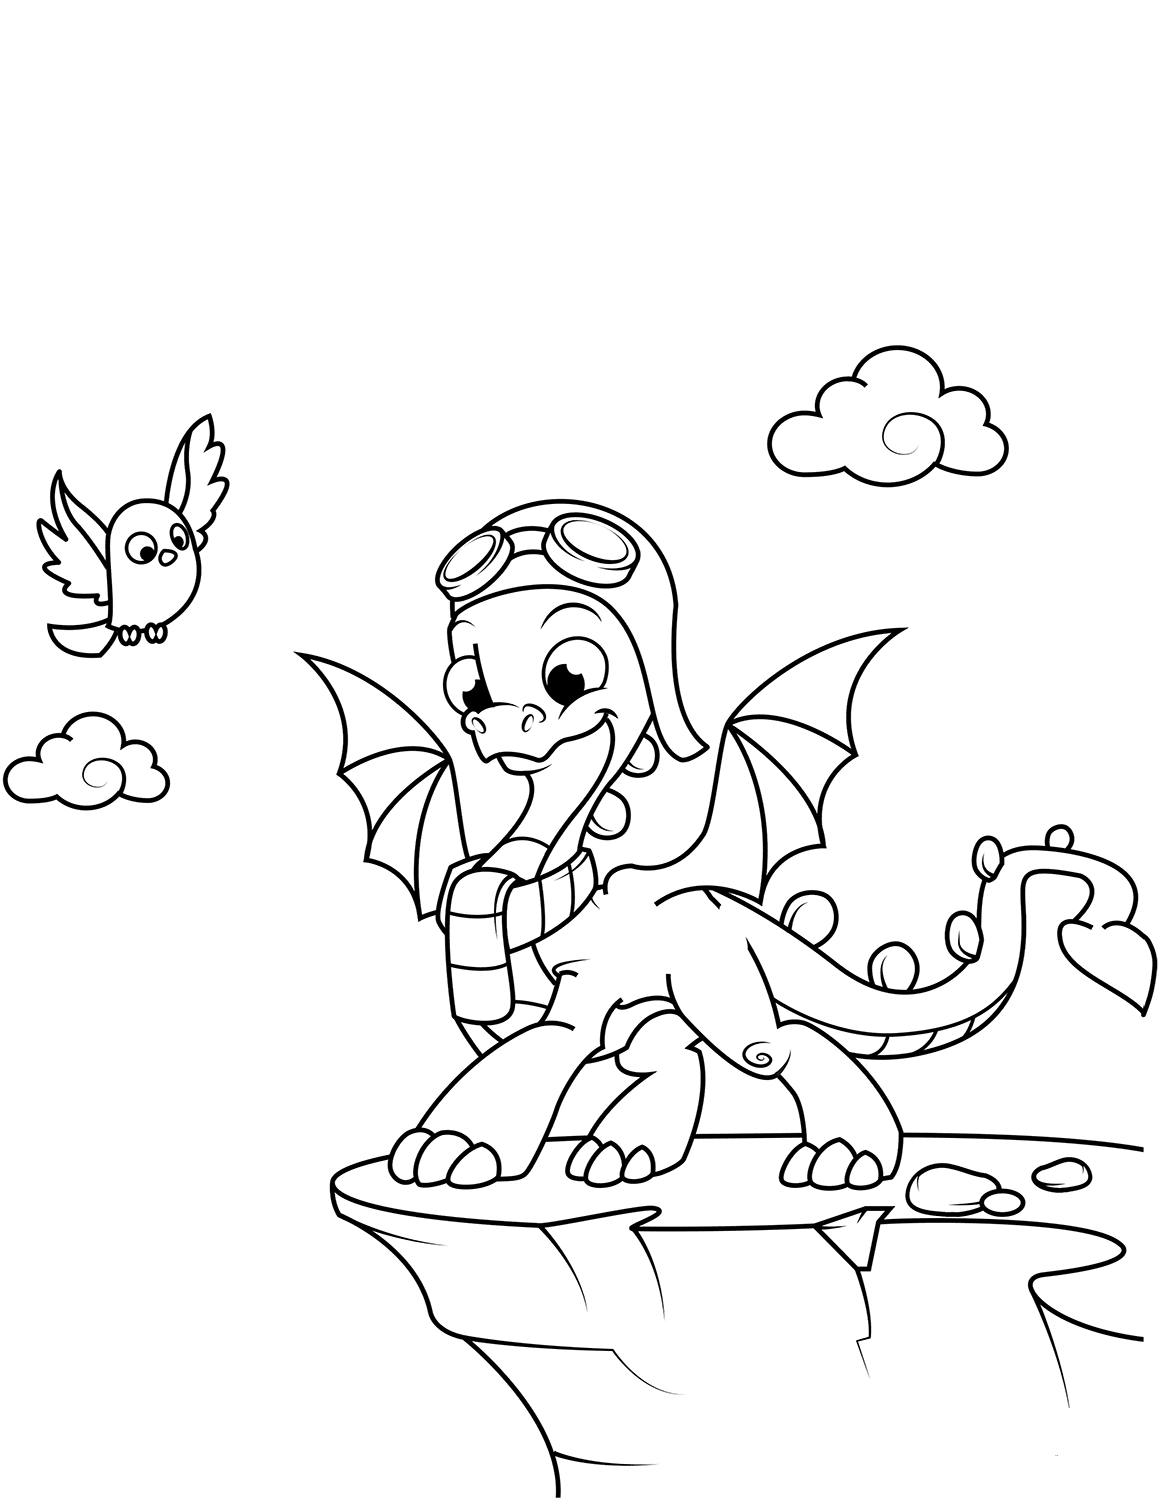 Cute Dragon Coloring Images